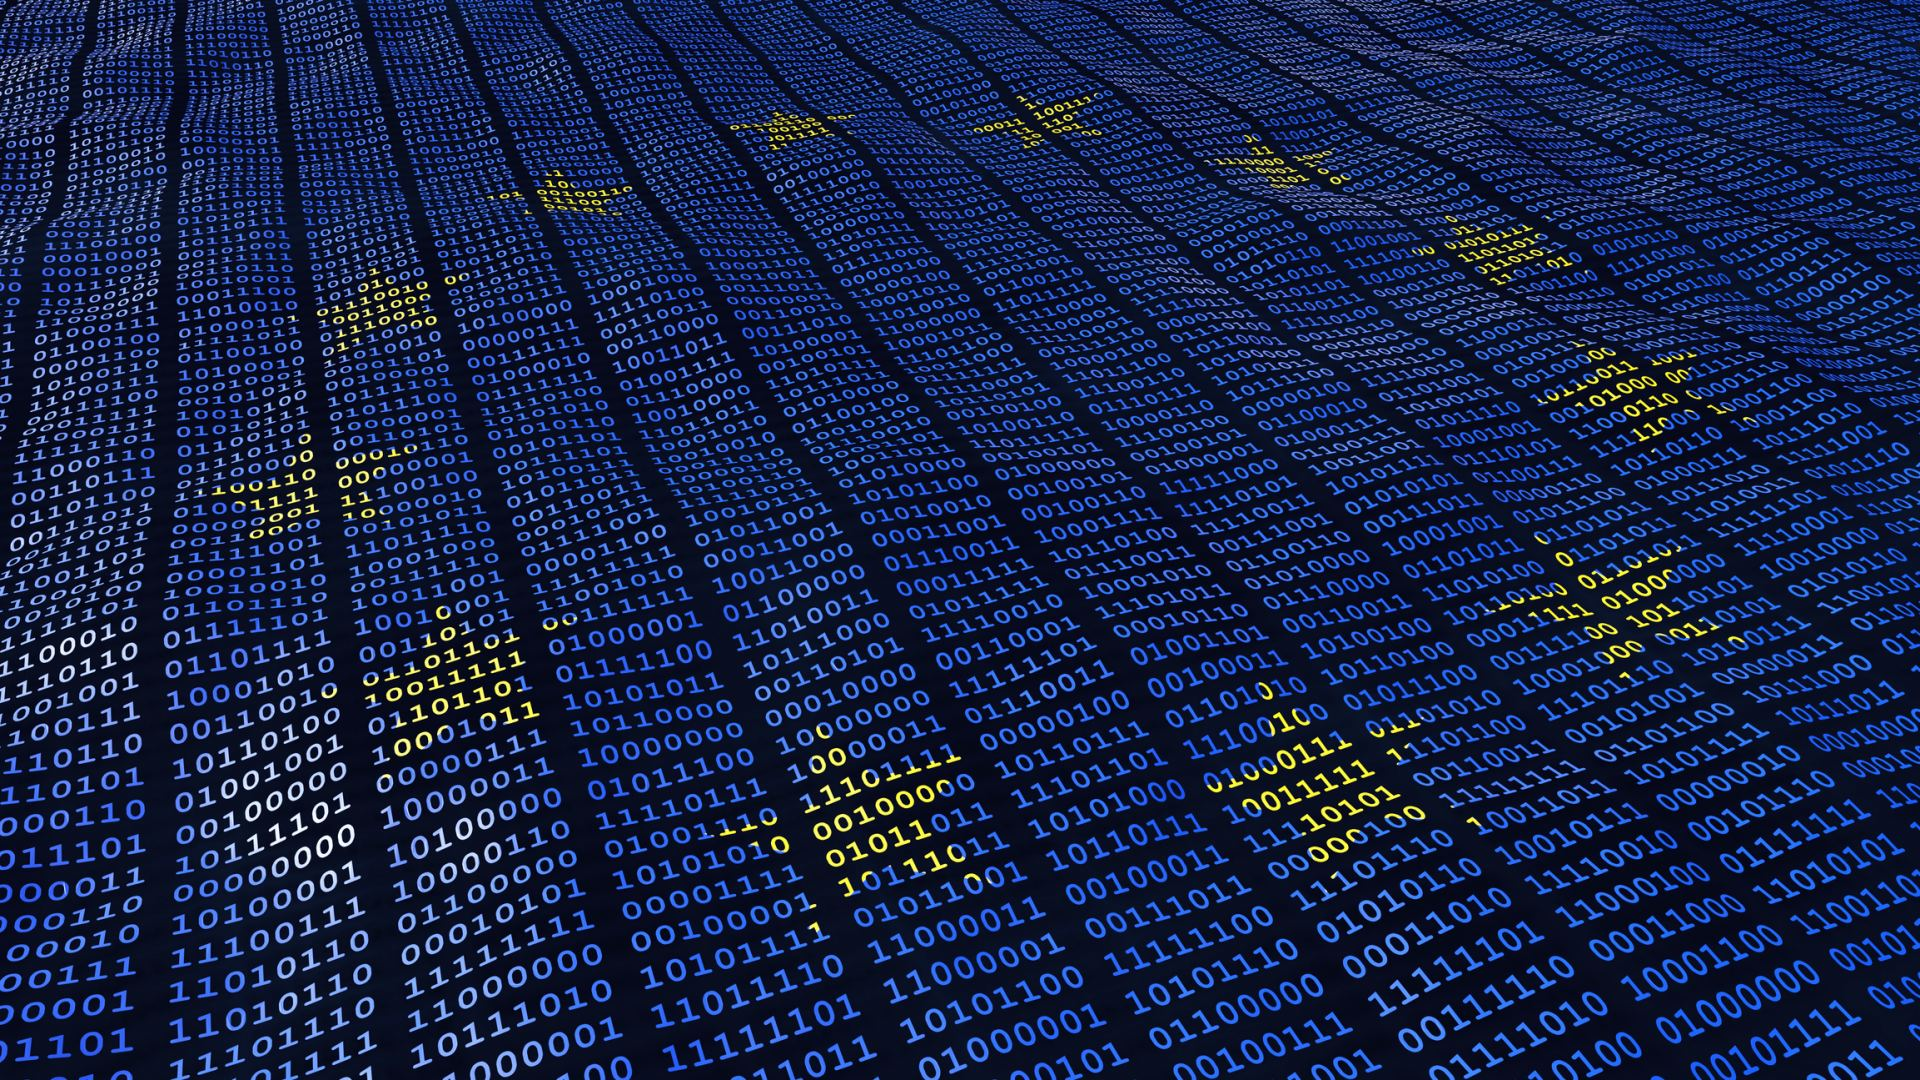 GDPR - What is it and how to prepare